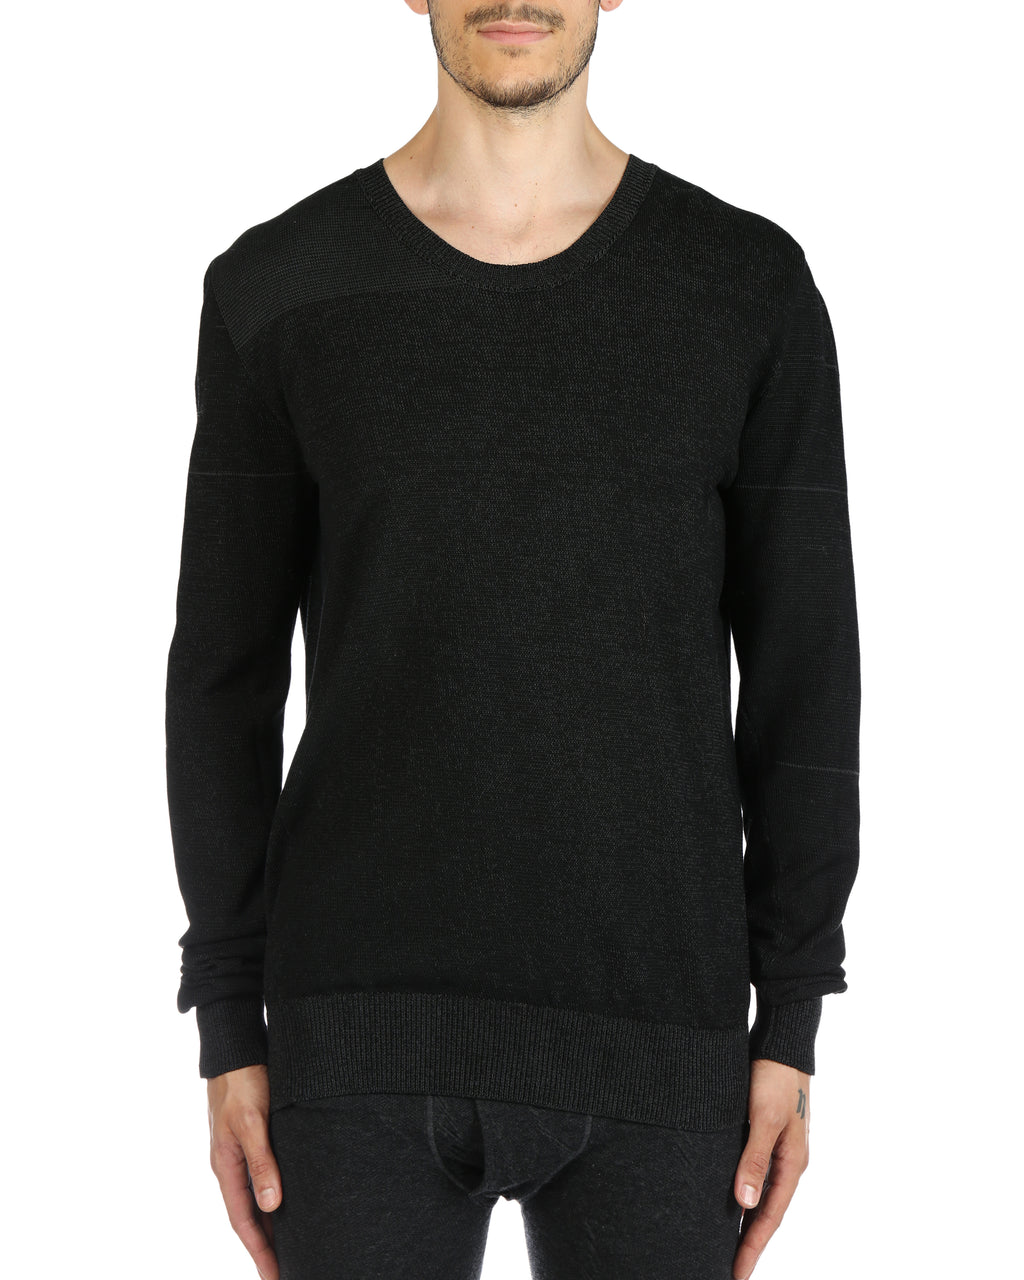 DEEPTI MEN REVERSIBLE KNIT PULLOVER